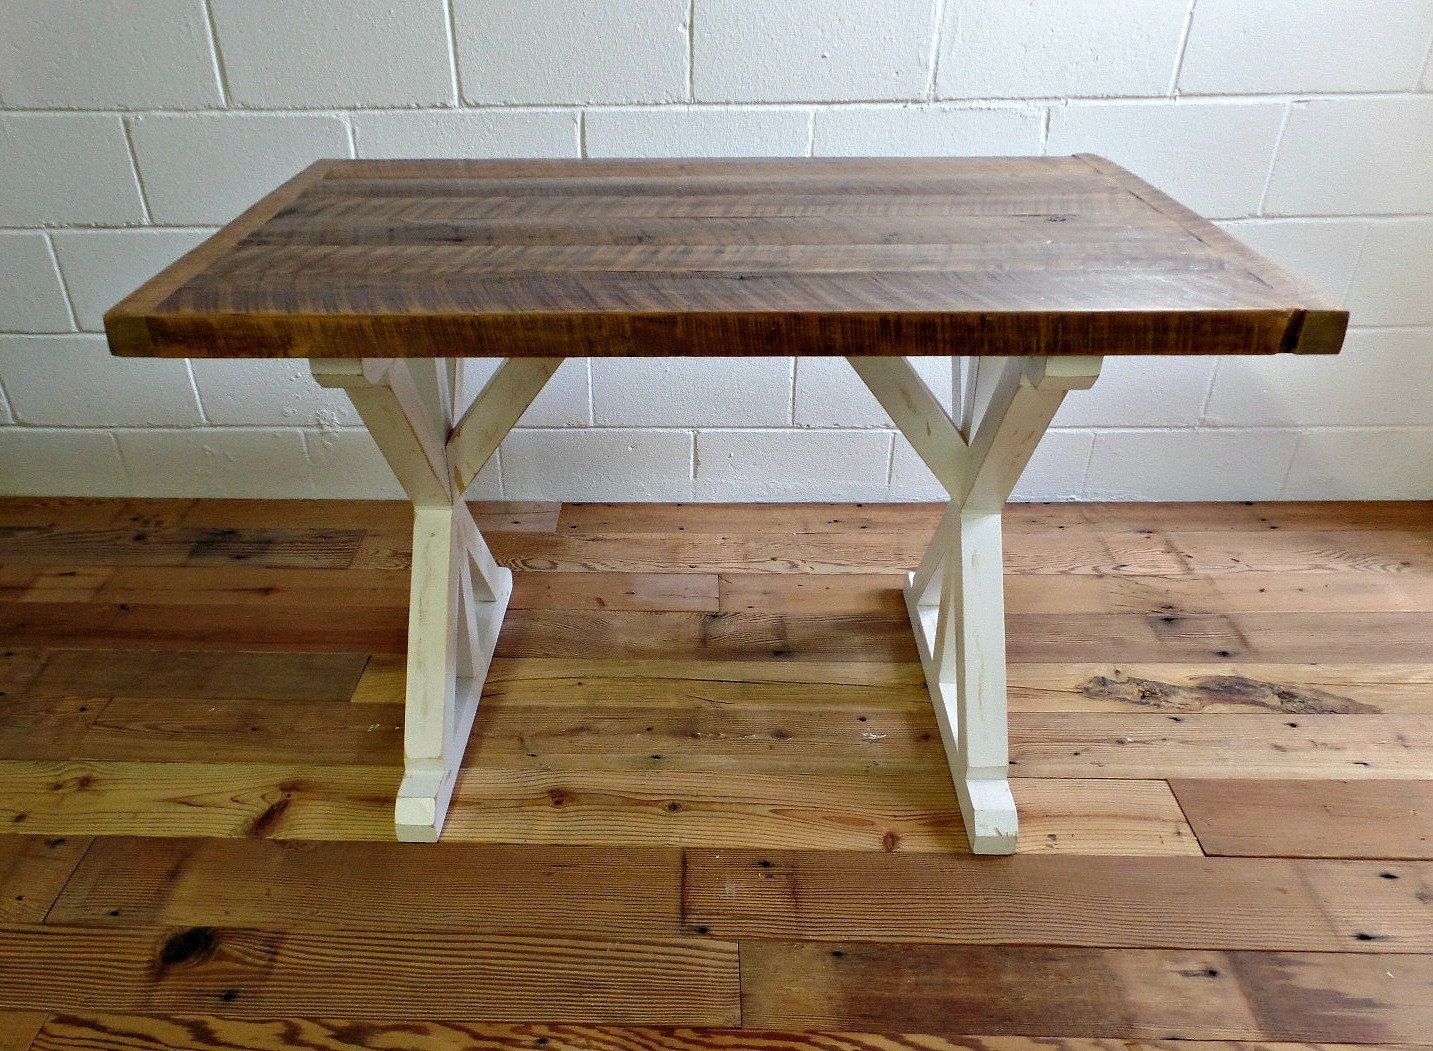 48 Inch Square Coffee Table Collection Reclaimed Wood Table 30 X 48 Inch Dining Table By Swde